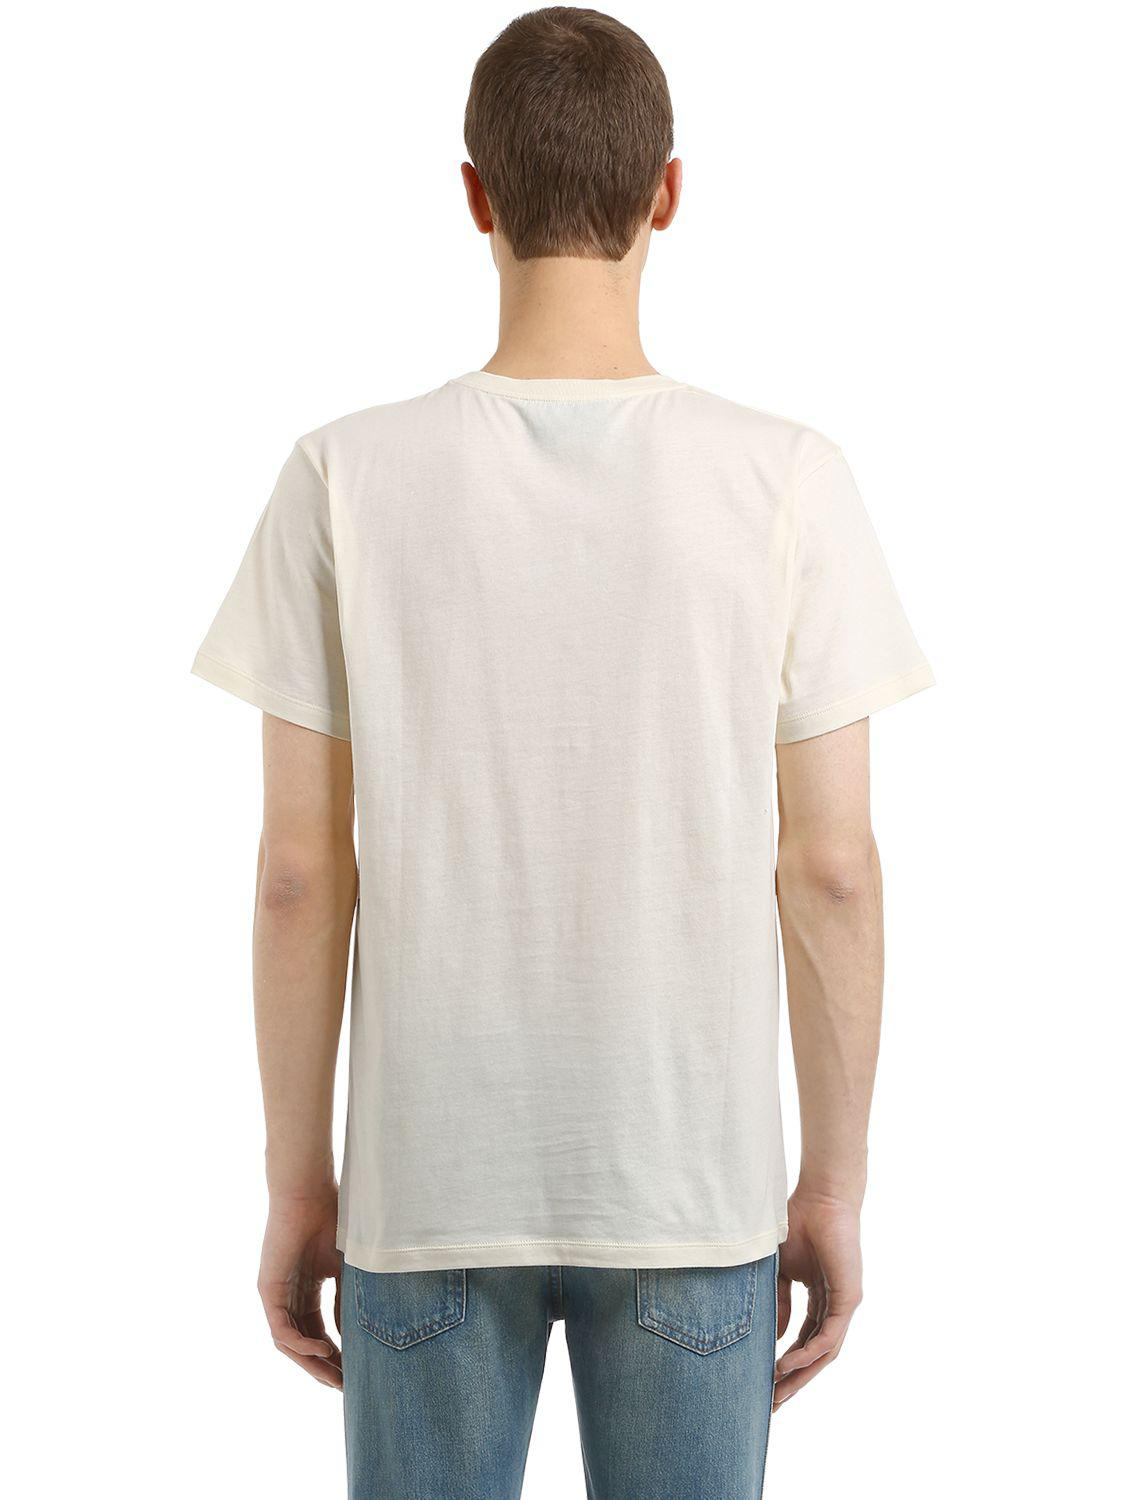 766e02b3 Gucci Fy Bat Print Cotton Jersey T-shirt in White for Men - Lyst